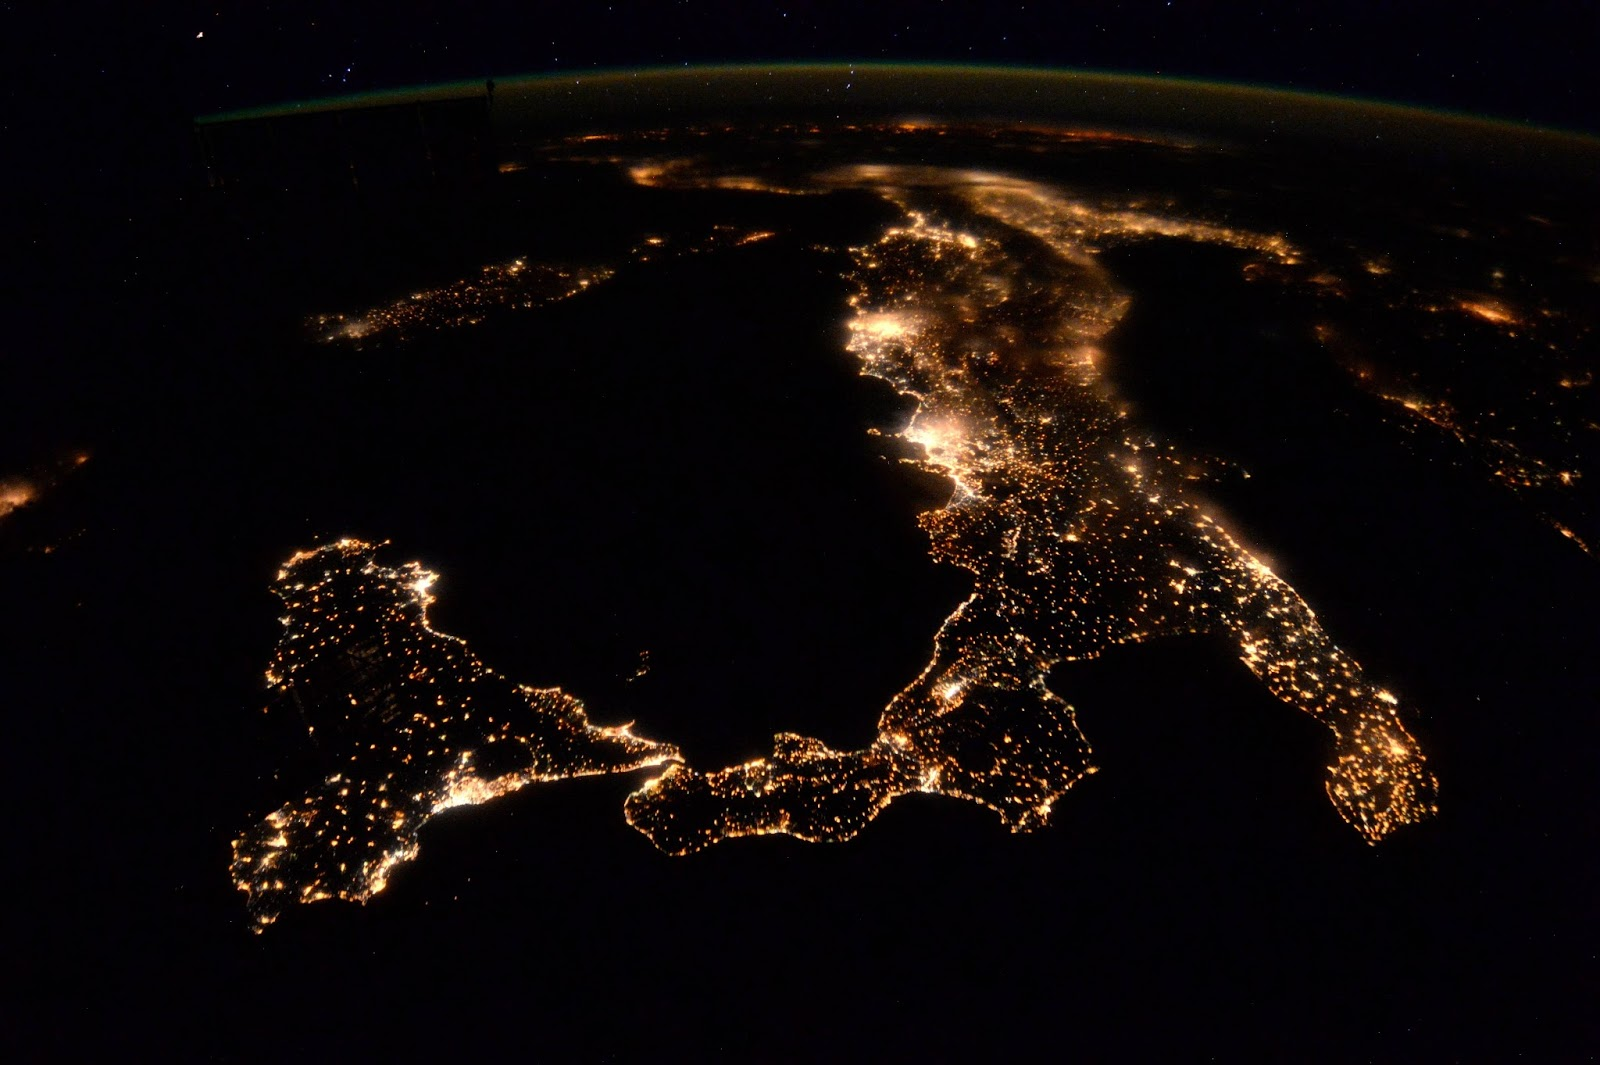 Italy at night from the International Space Station by astronaut Tim Peake.